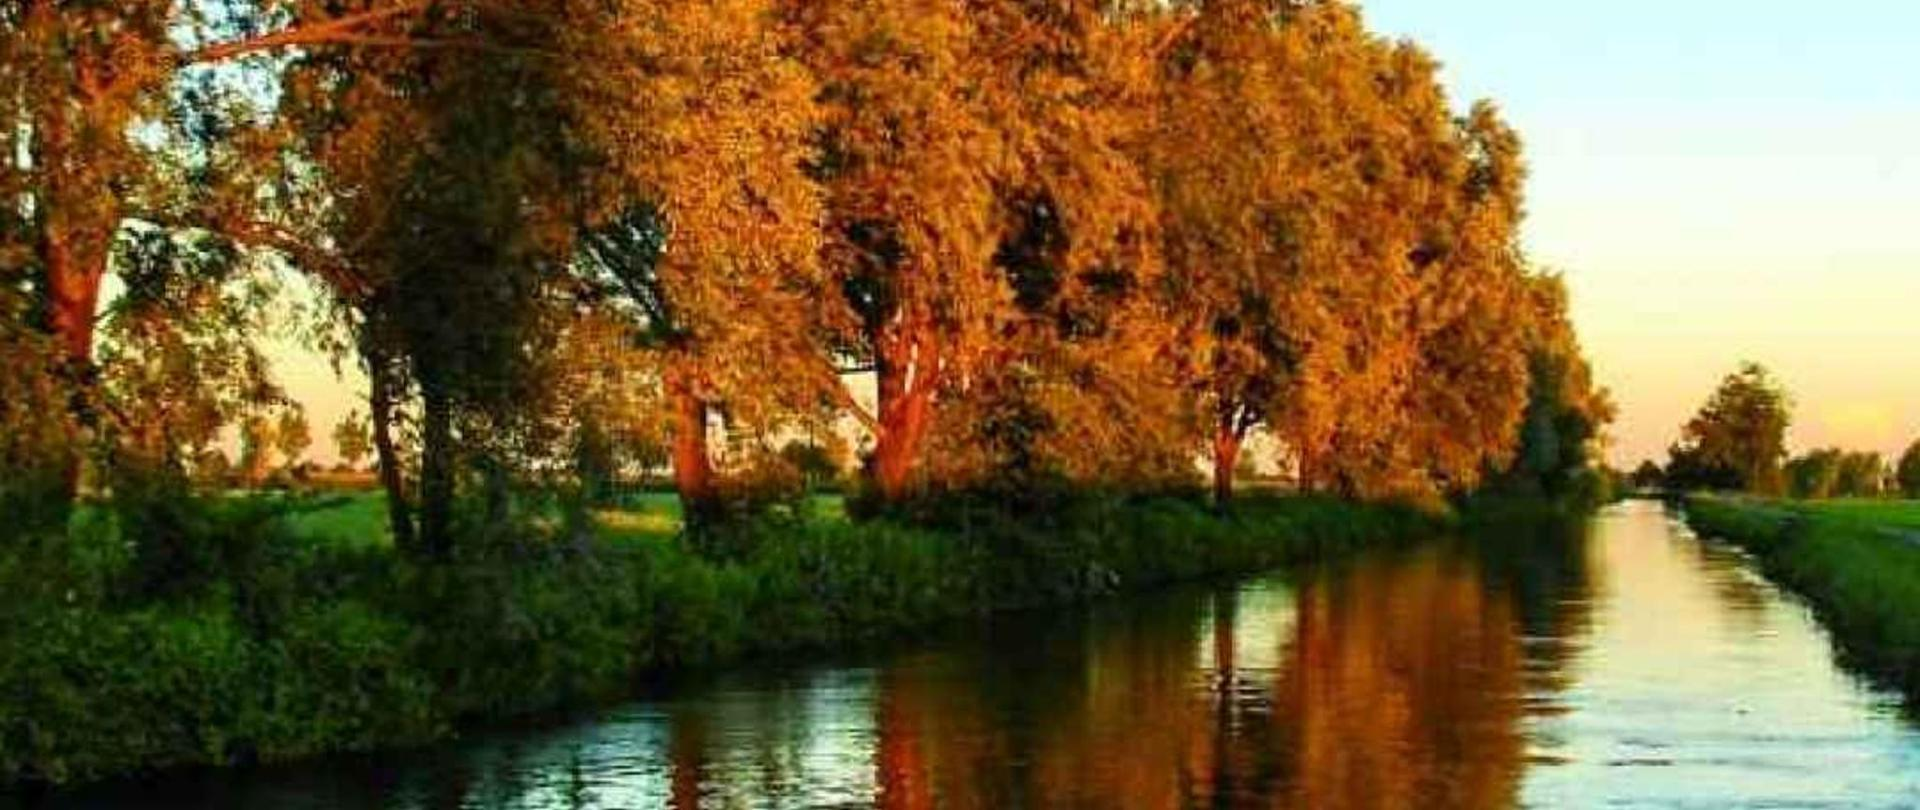 CANALE AUTUNNO.jpg